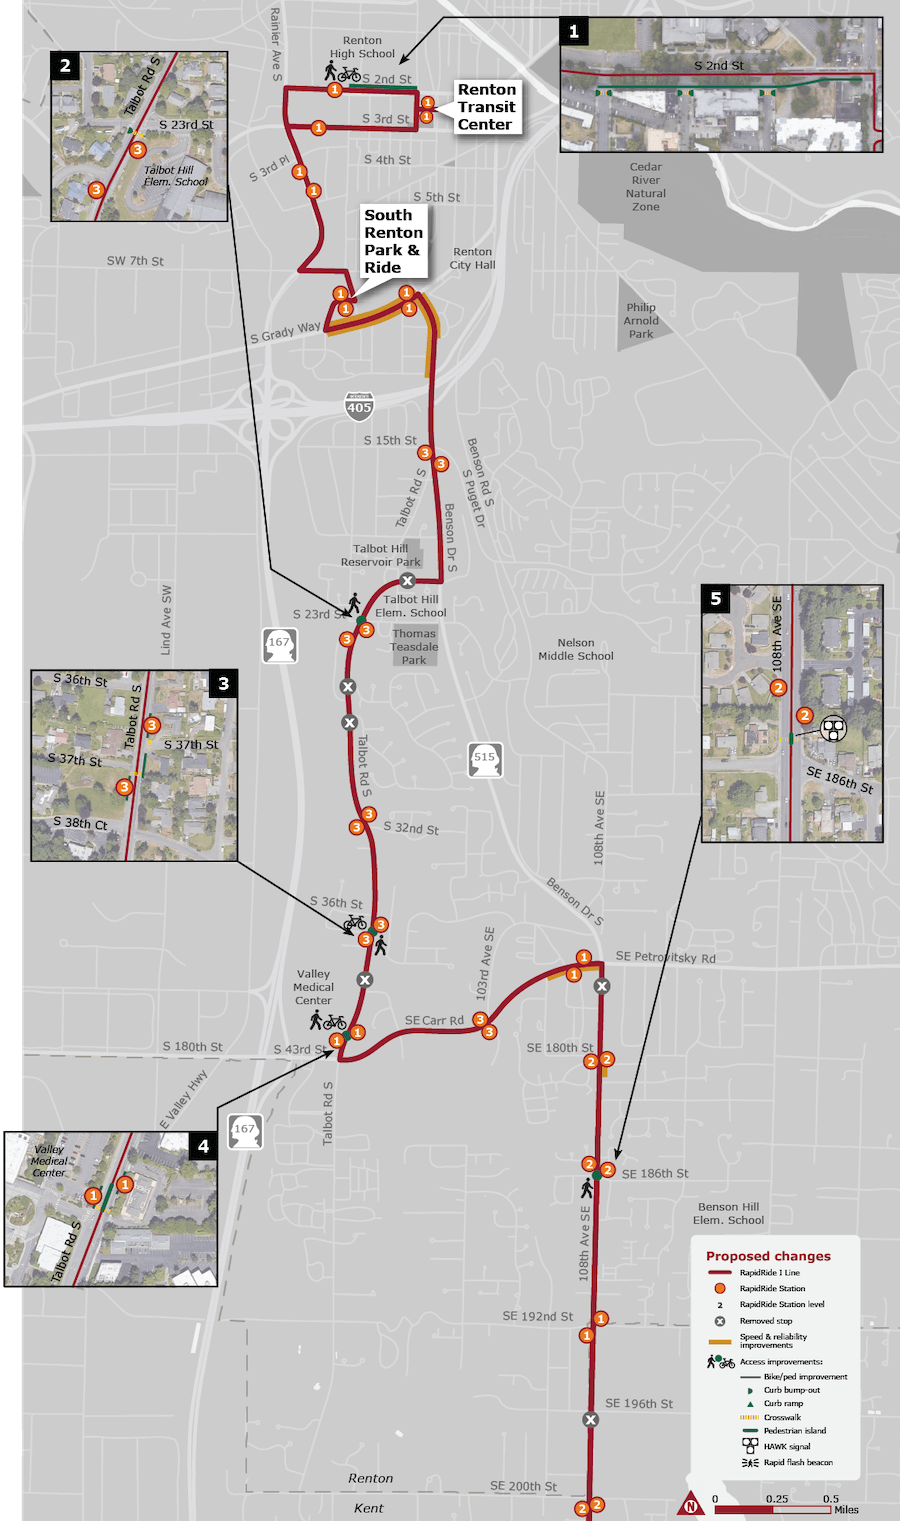 A map of station locations, speed and reliability projects, and numbered callouts showing access projects.